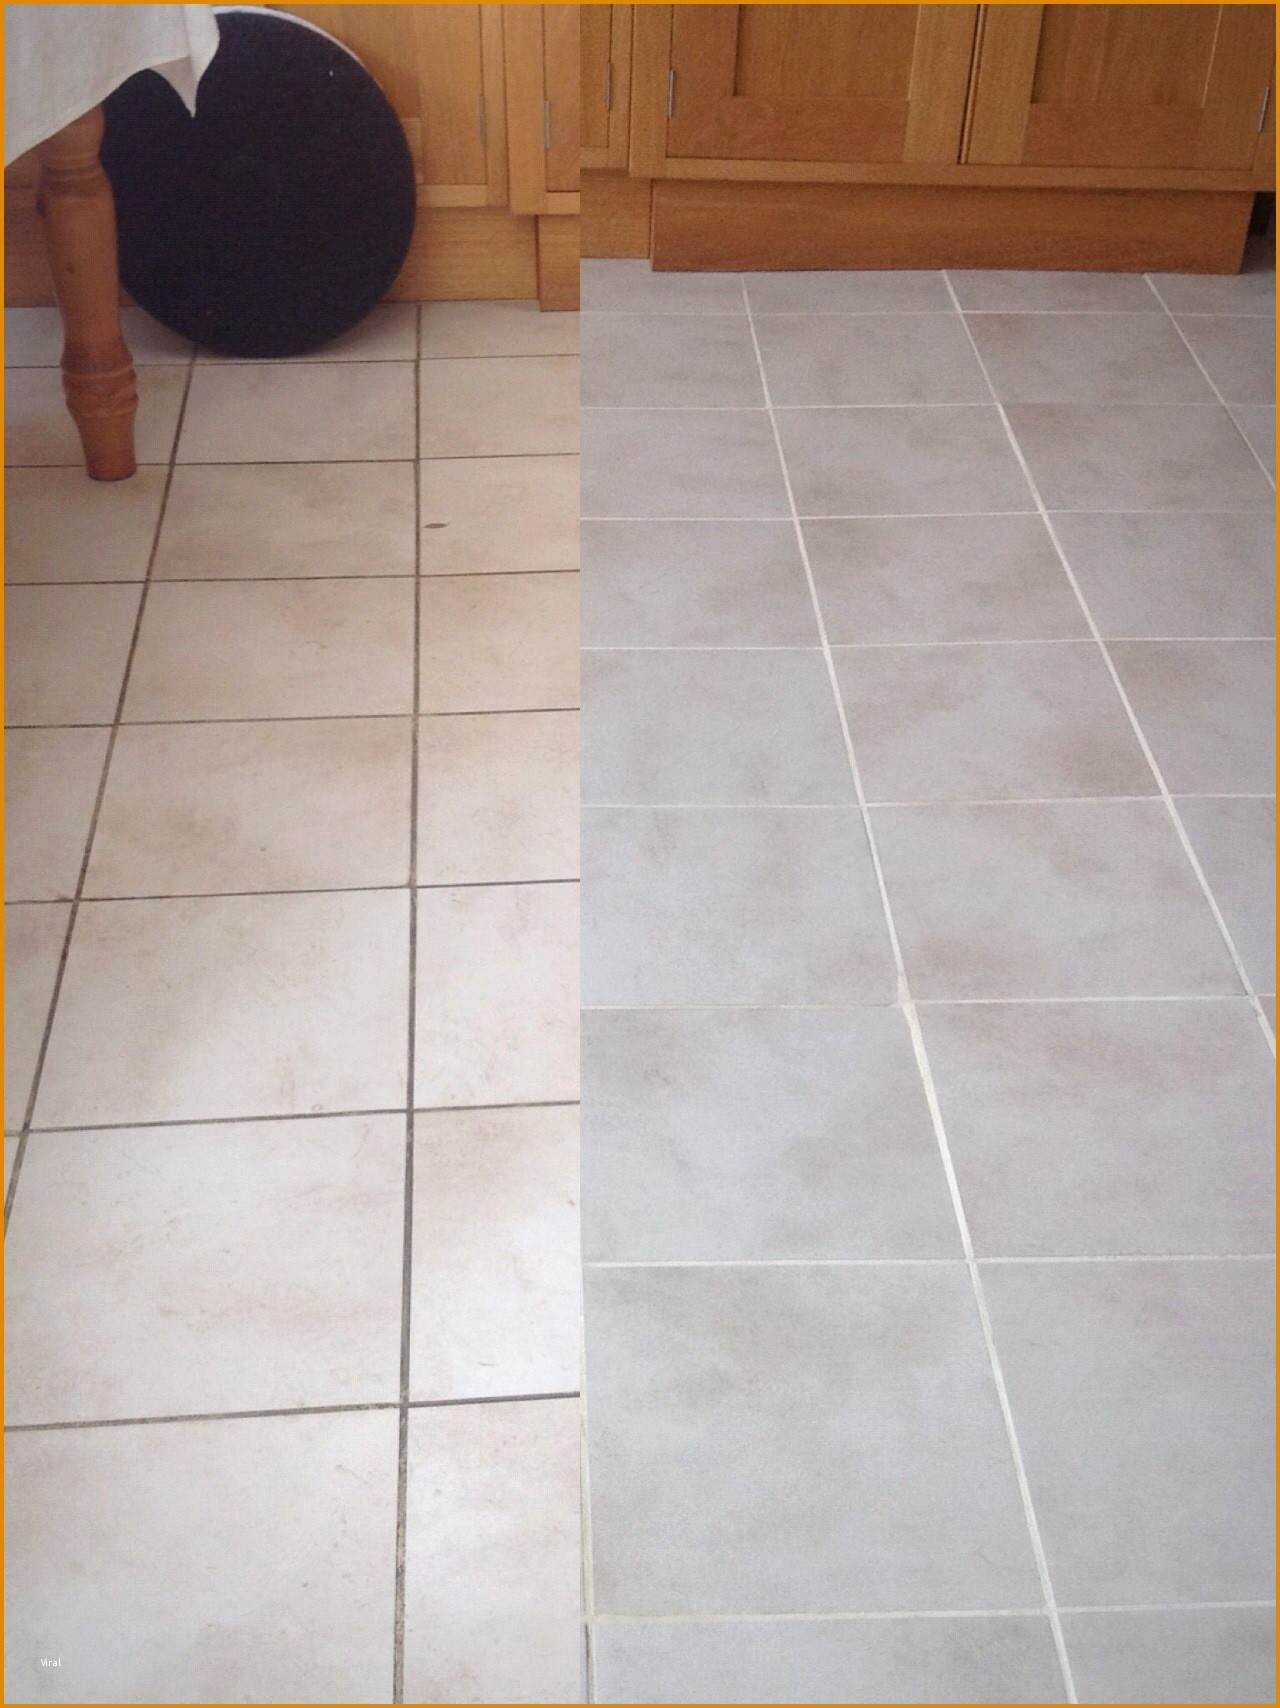 How To Clean Ceramic Tile Floors And Grout | Top Home ...